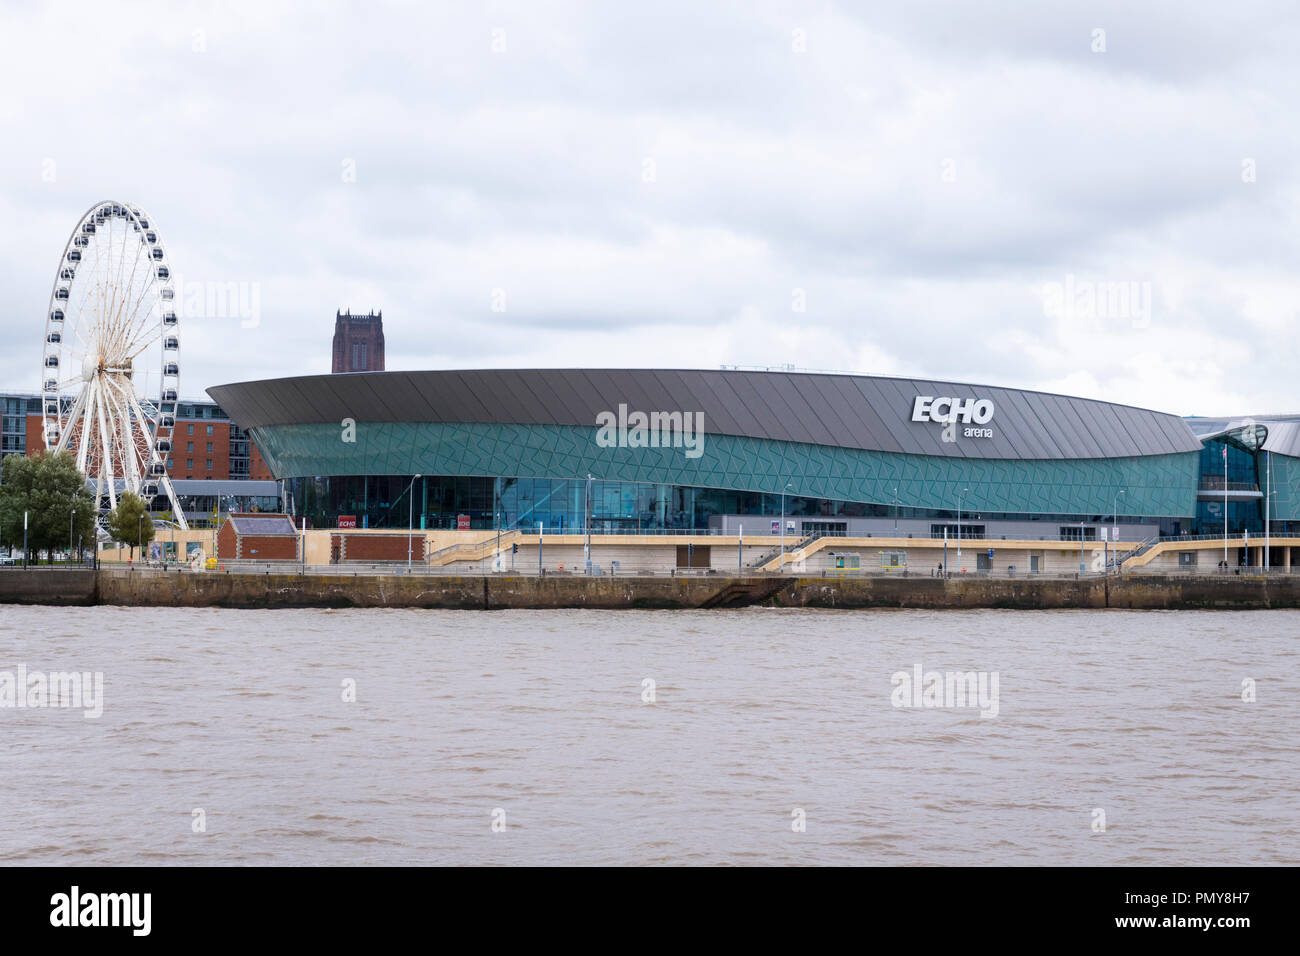 Liverpool  Merseyside the Echo Arena venue live music comedy performances sporting events Big Wheel 42 capsules piazza waterfront 60m high - Stock Image